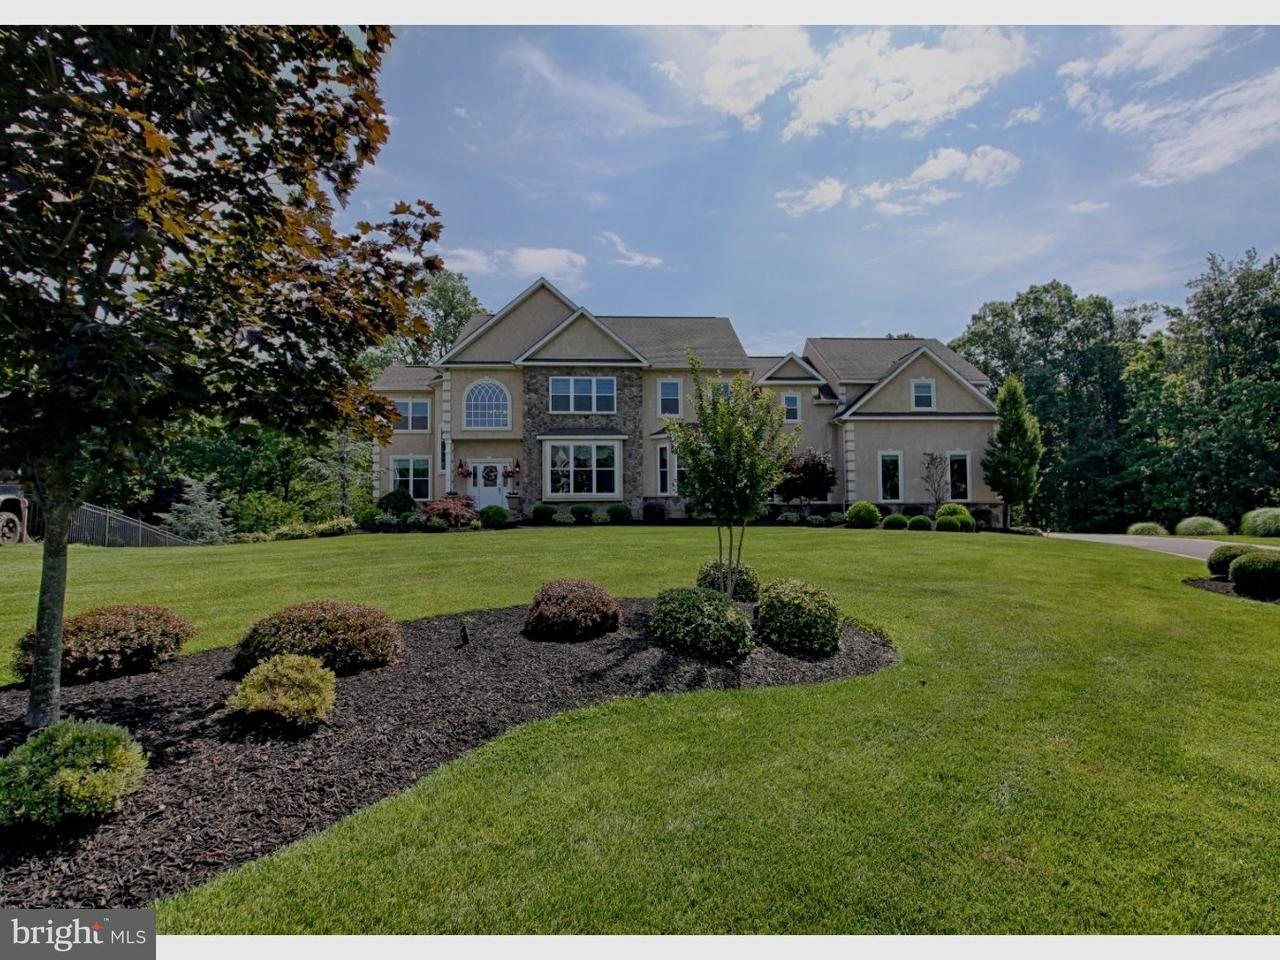 Single Family Home for Rent at 111 PANCOAST Place Mullica Hill, New Jersey 08062 United States